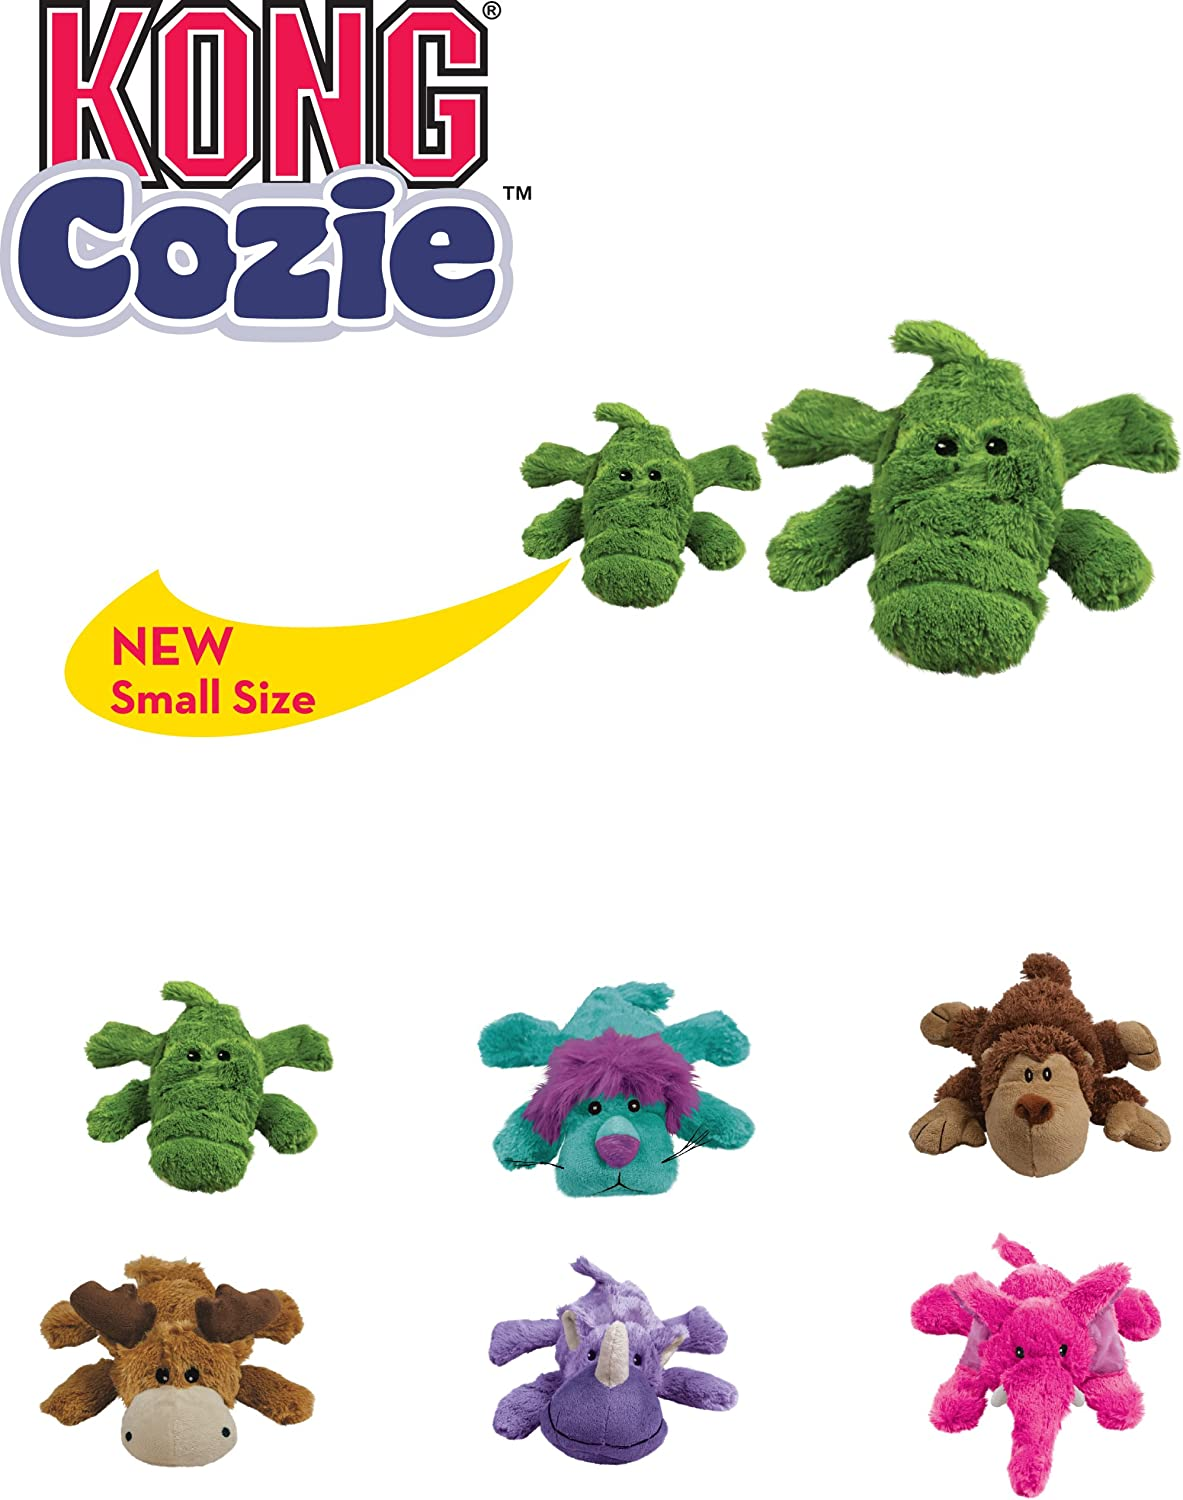 KONG Indoor Cuddle Squeaky Plush Dog Toy For Small Dogs Cozie/™ Marvin Moose